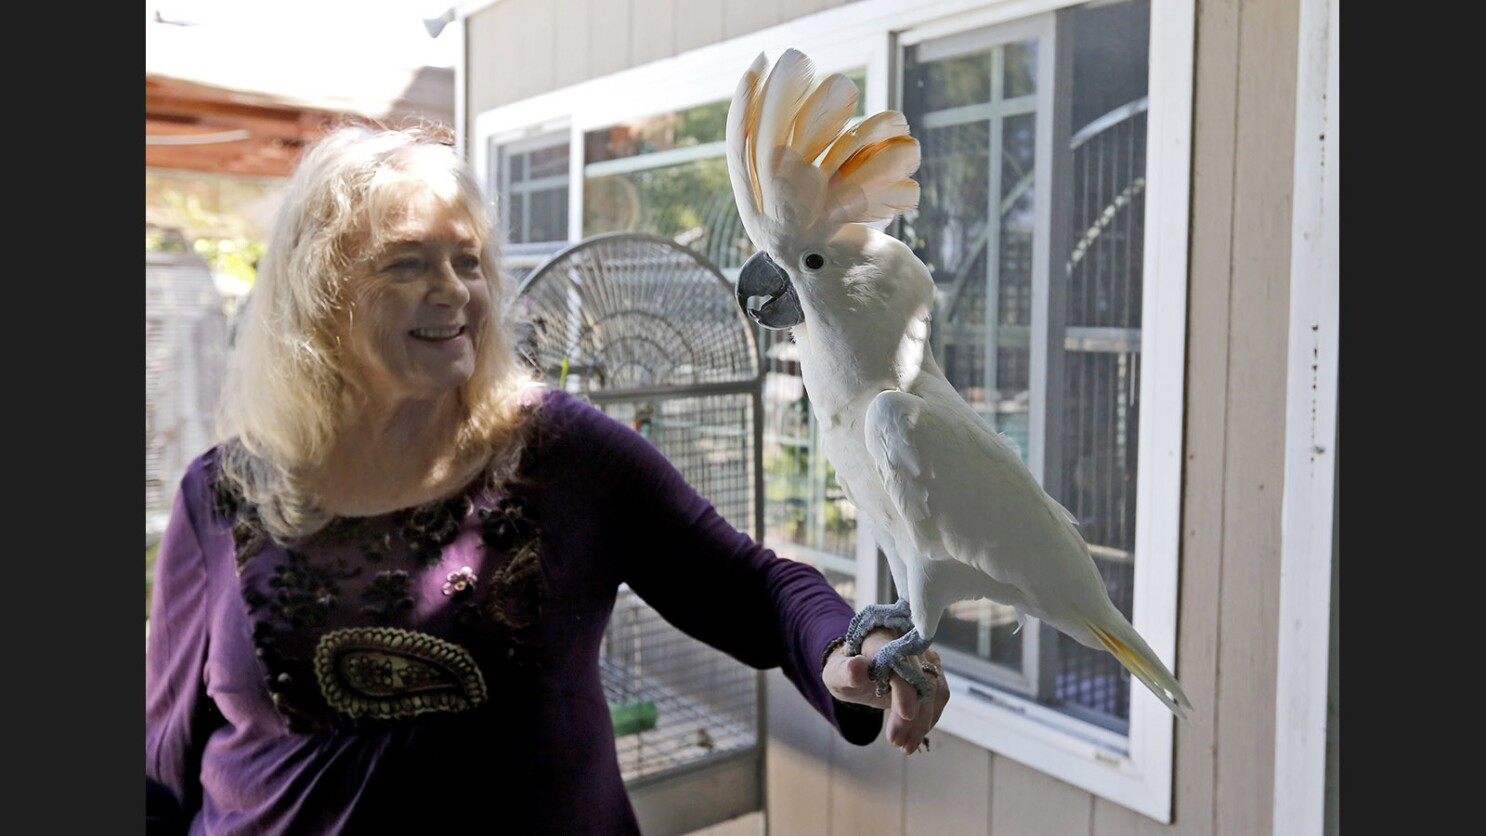 Westminster parrot sanctuary is a home for life for unwanted